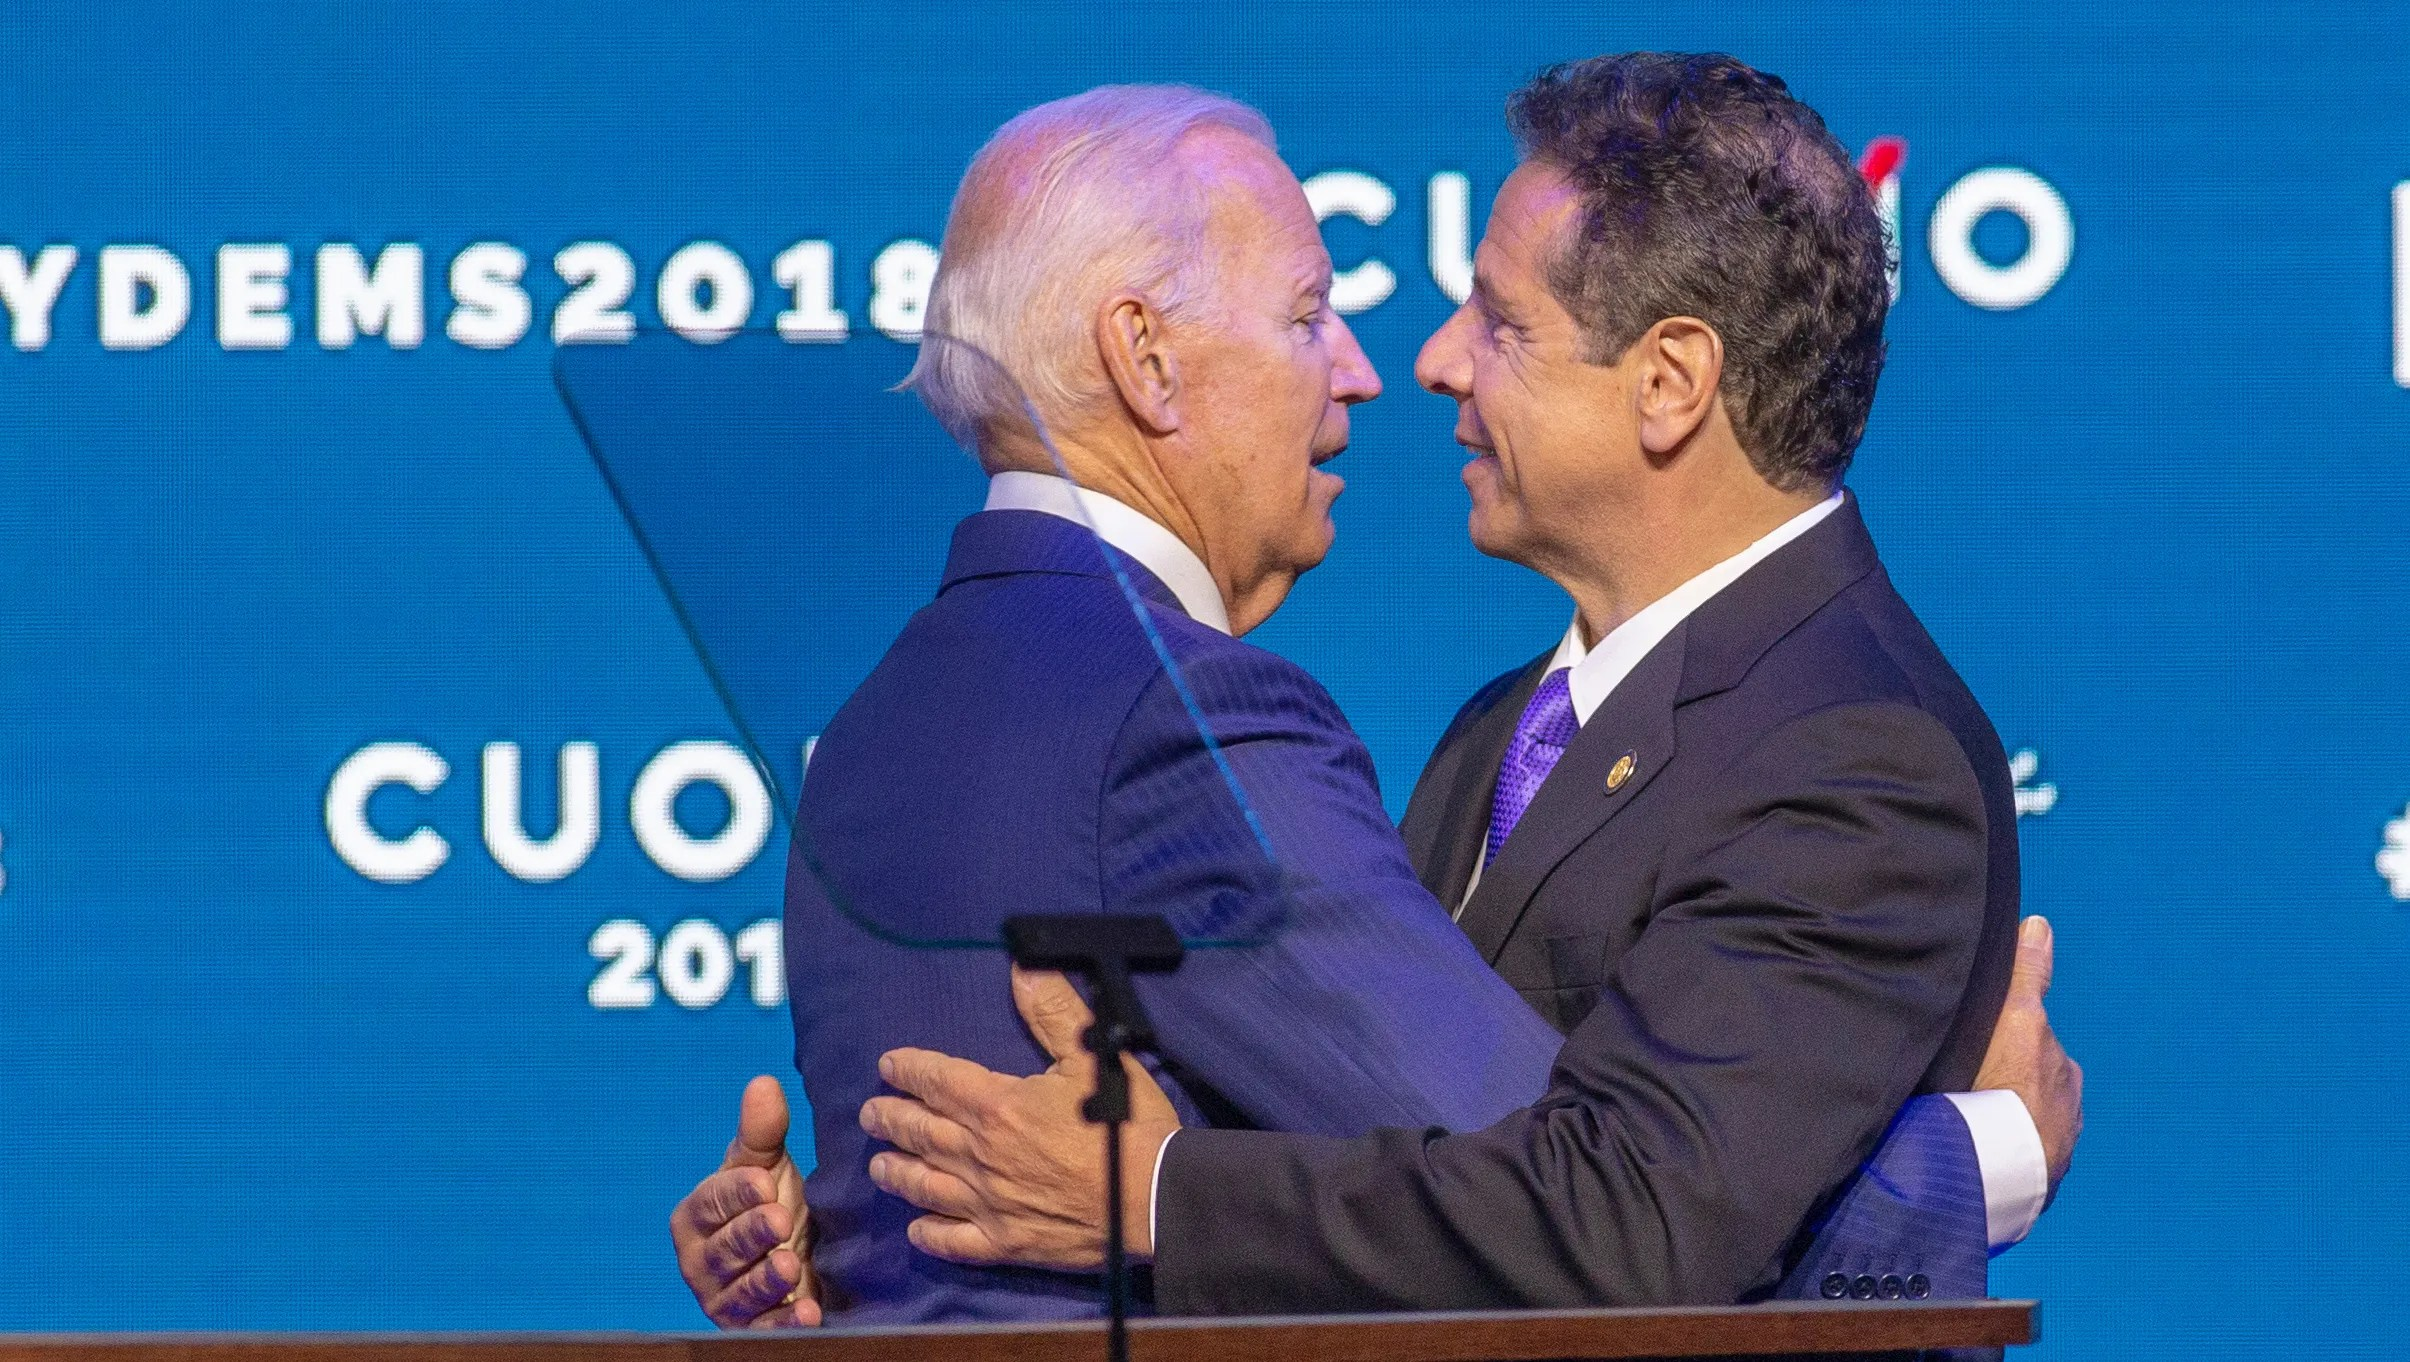 Cuomo touts progressive policies in case for third term at convention